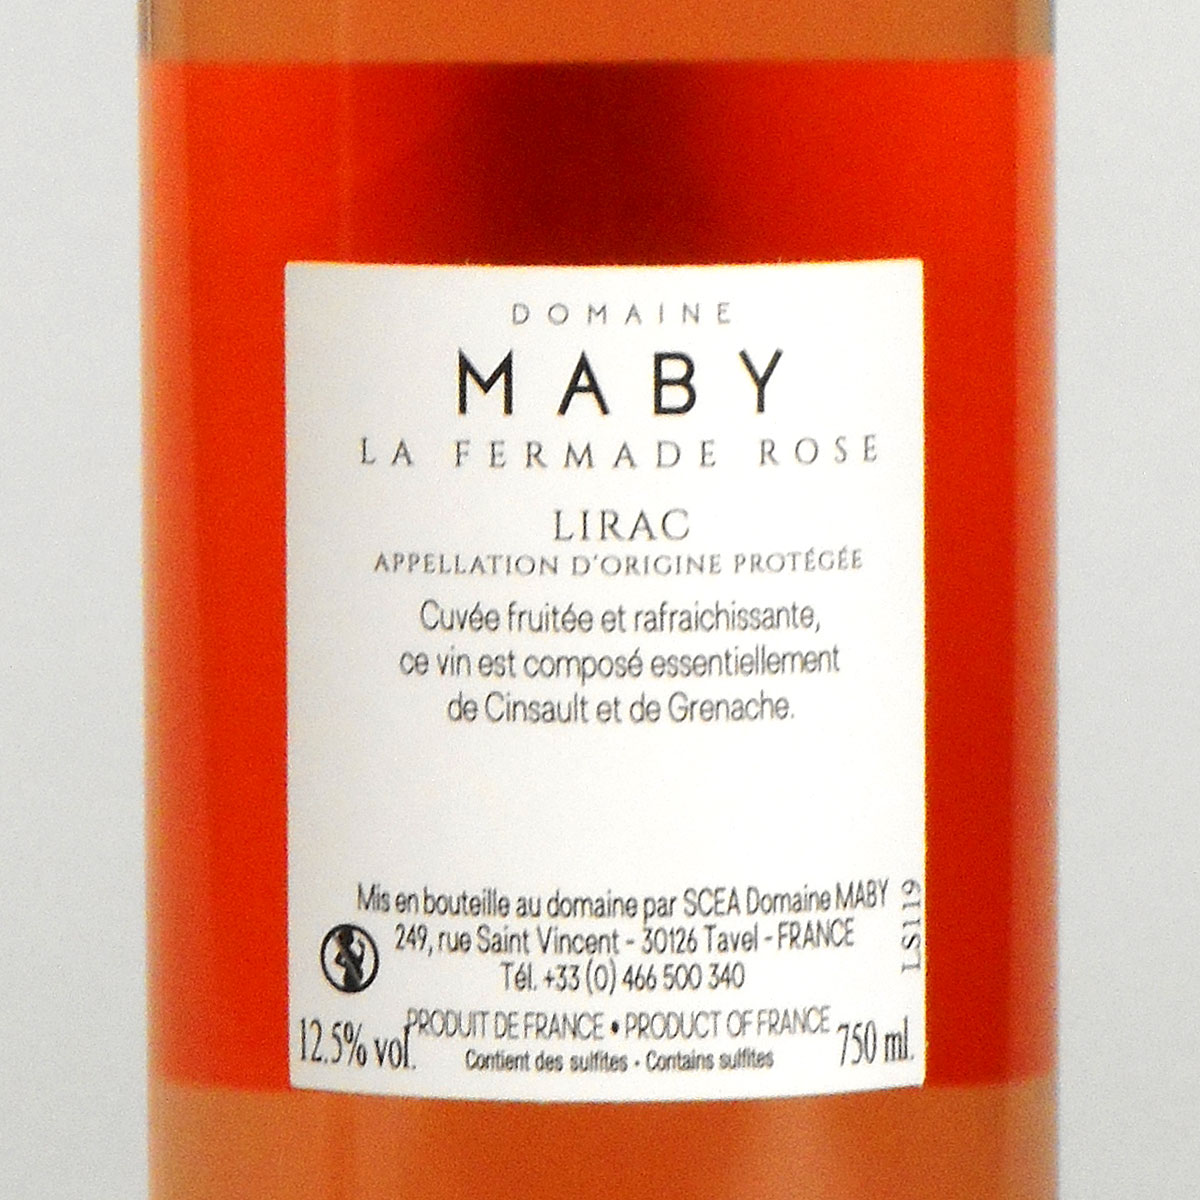 Lirac: Domaine Maby 'La Fermade' Rosé 2019 - Bottle Rear Label